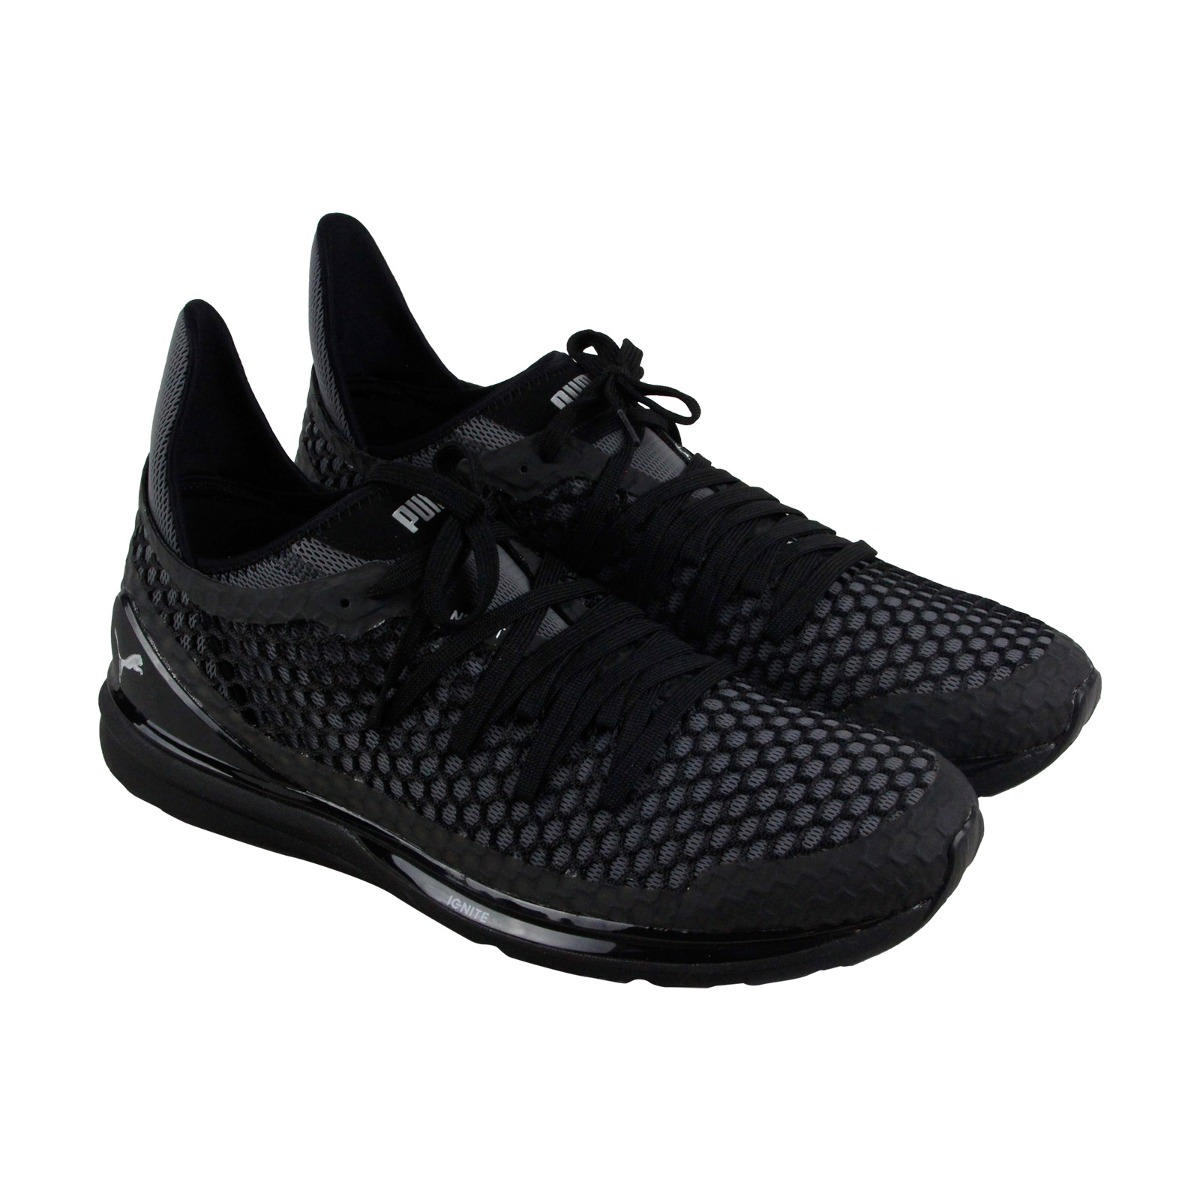 cheap for discount b1302 e8720 Tenis Puma Ignite Limitless Netfit